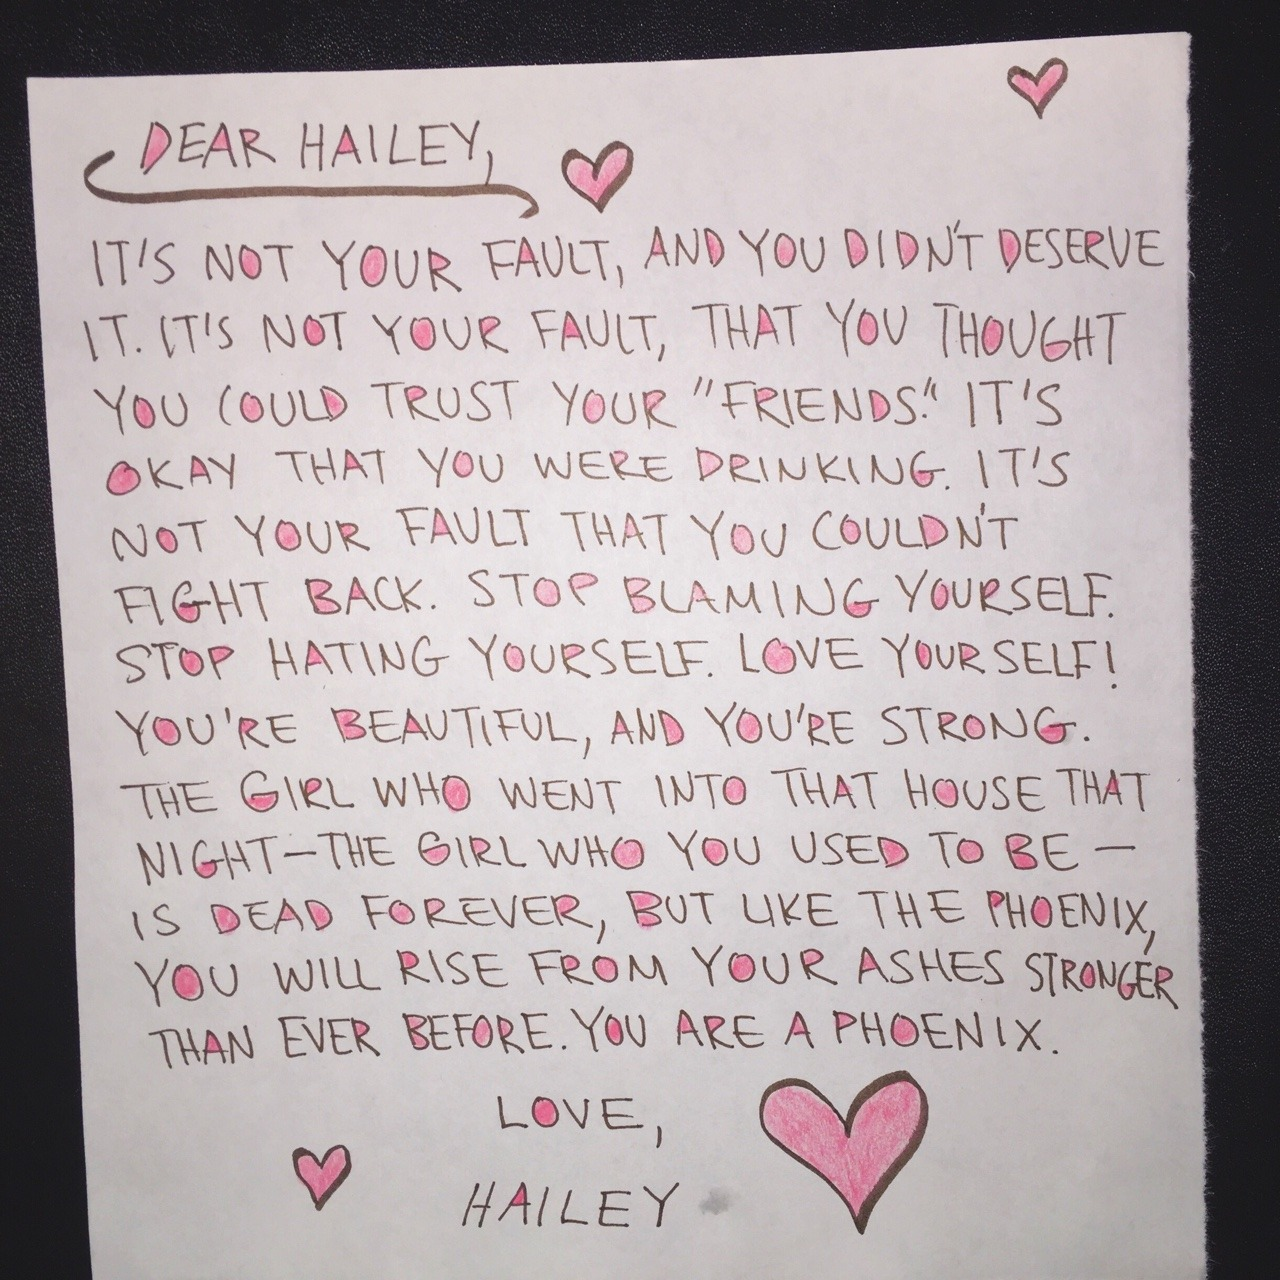 """Dear Hailey,  It's not your fault, and you didn't deserve it. It's not your fault, that you thought you could trust your""""friends."""" It's okay that you were drinking. It's not your fault that you couldn't fight back. Stop blaming yourself. Stop hating yourself. Love yourself! You're beautiful, and you're strong. The girl who went into that house that night- the girl who you used to be- is dead forever, but like the phoenix, you will rise from the ashes stronger than ever before. You are a phoenix.  Love, Hailey"""